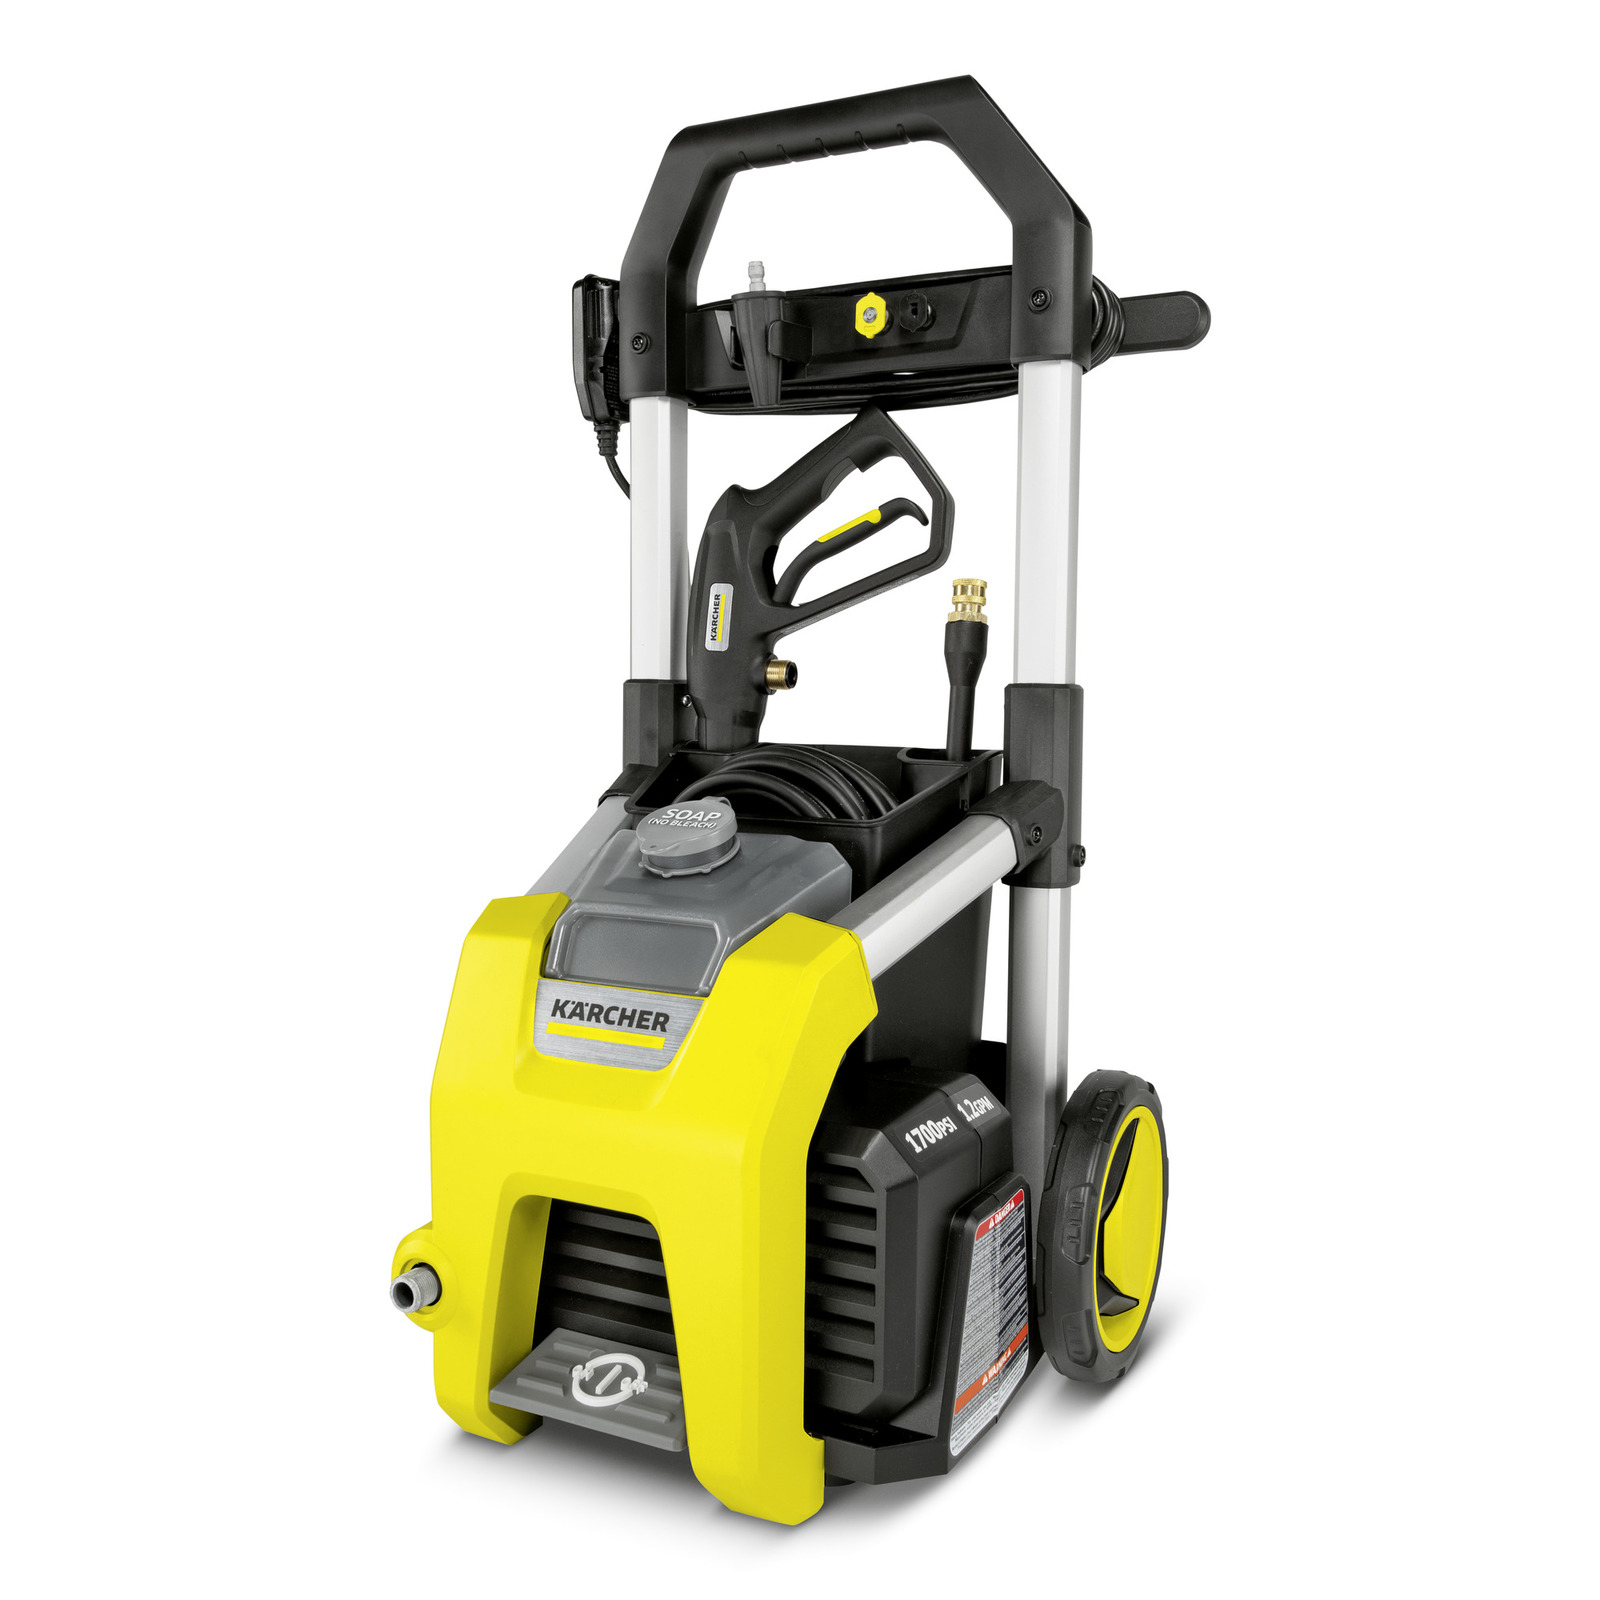 K1700 11061090 https://www.kaercher.com/us/home-garden/electric-pressure-washers/k1700-11061090.html  The K1700 offers performance and convenience at a very ...